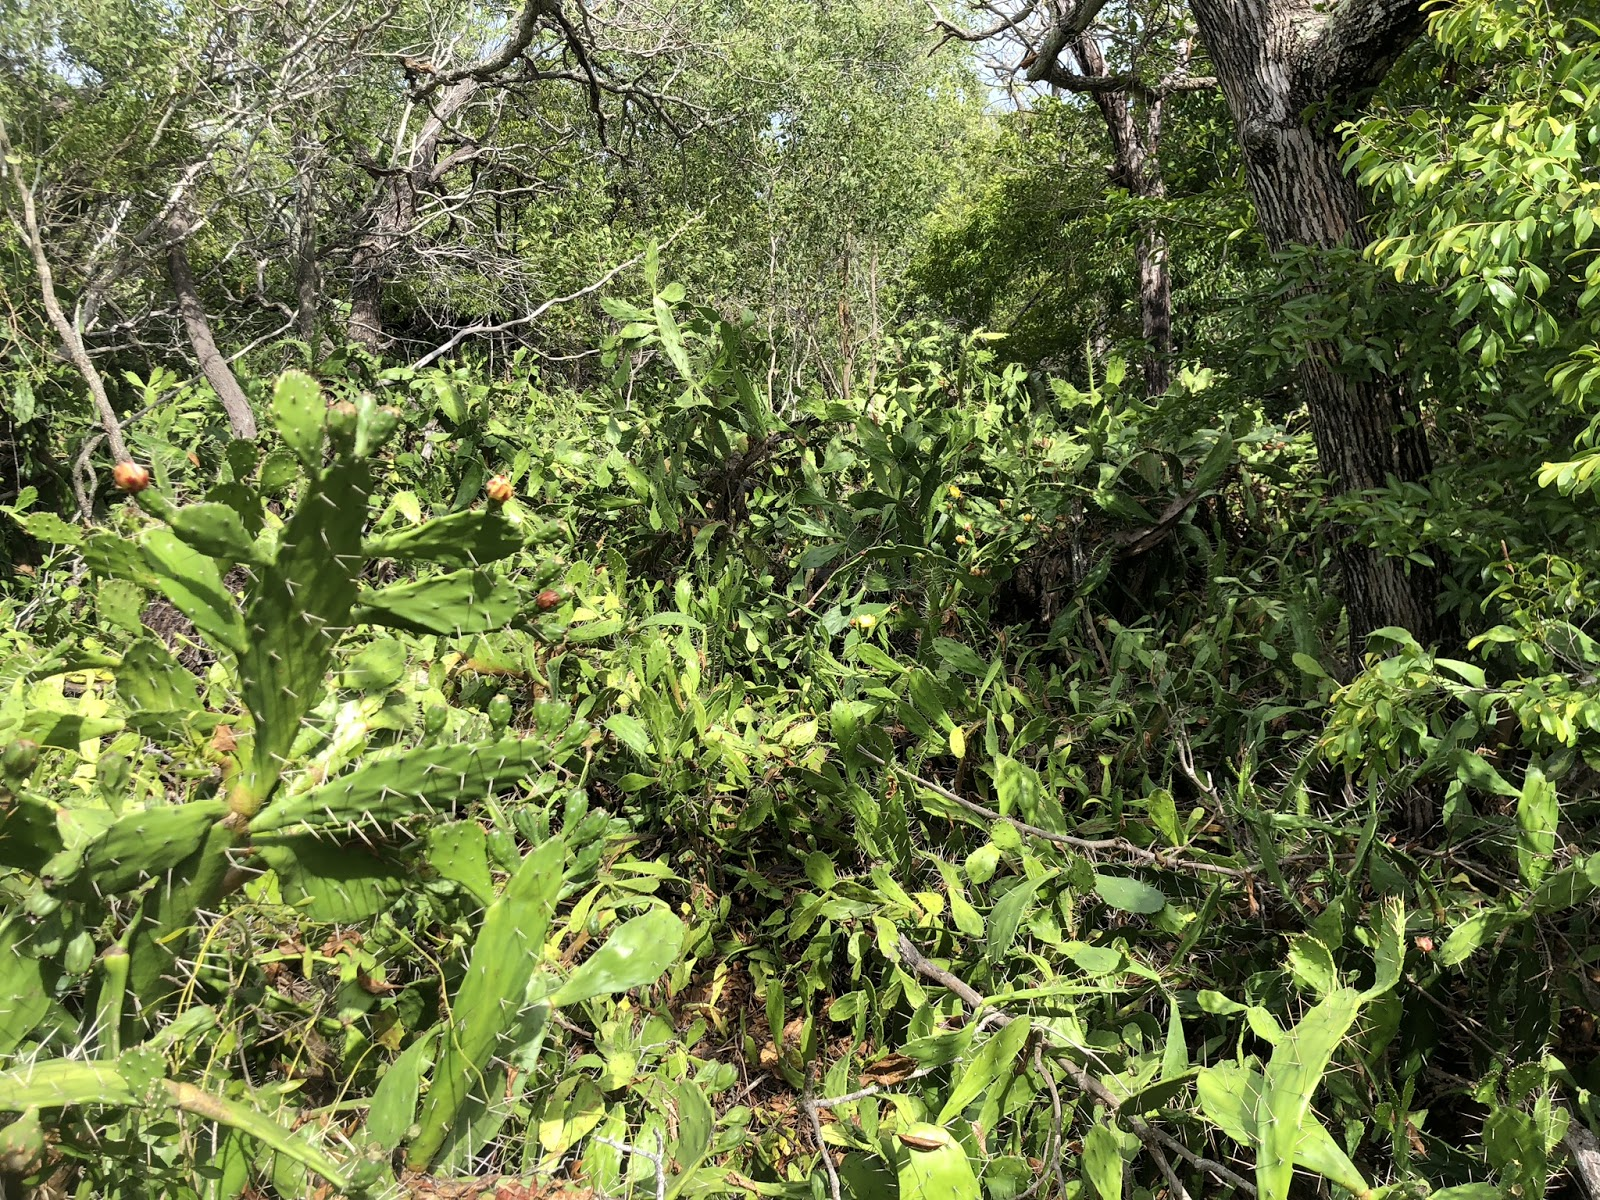 BSP18 prickly pear opuntia infestation